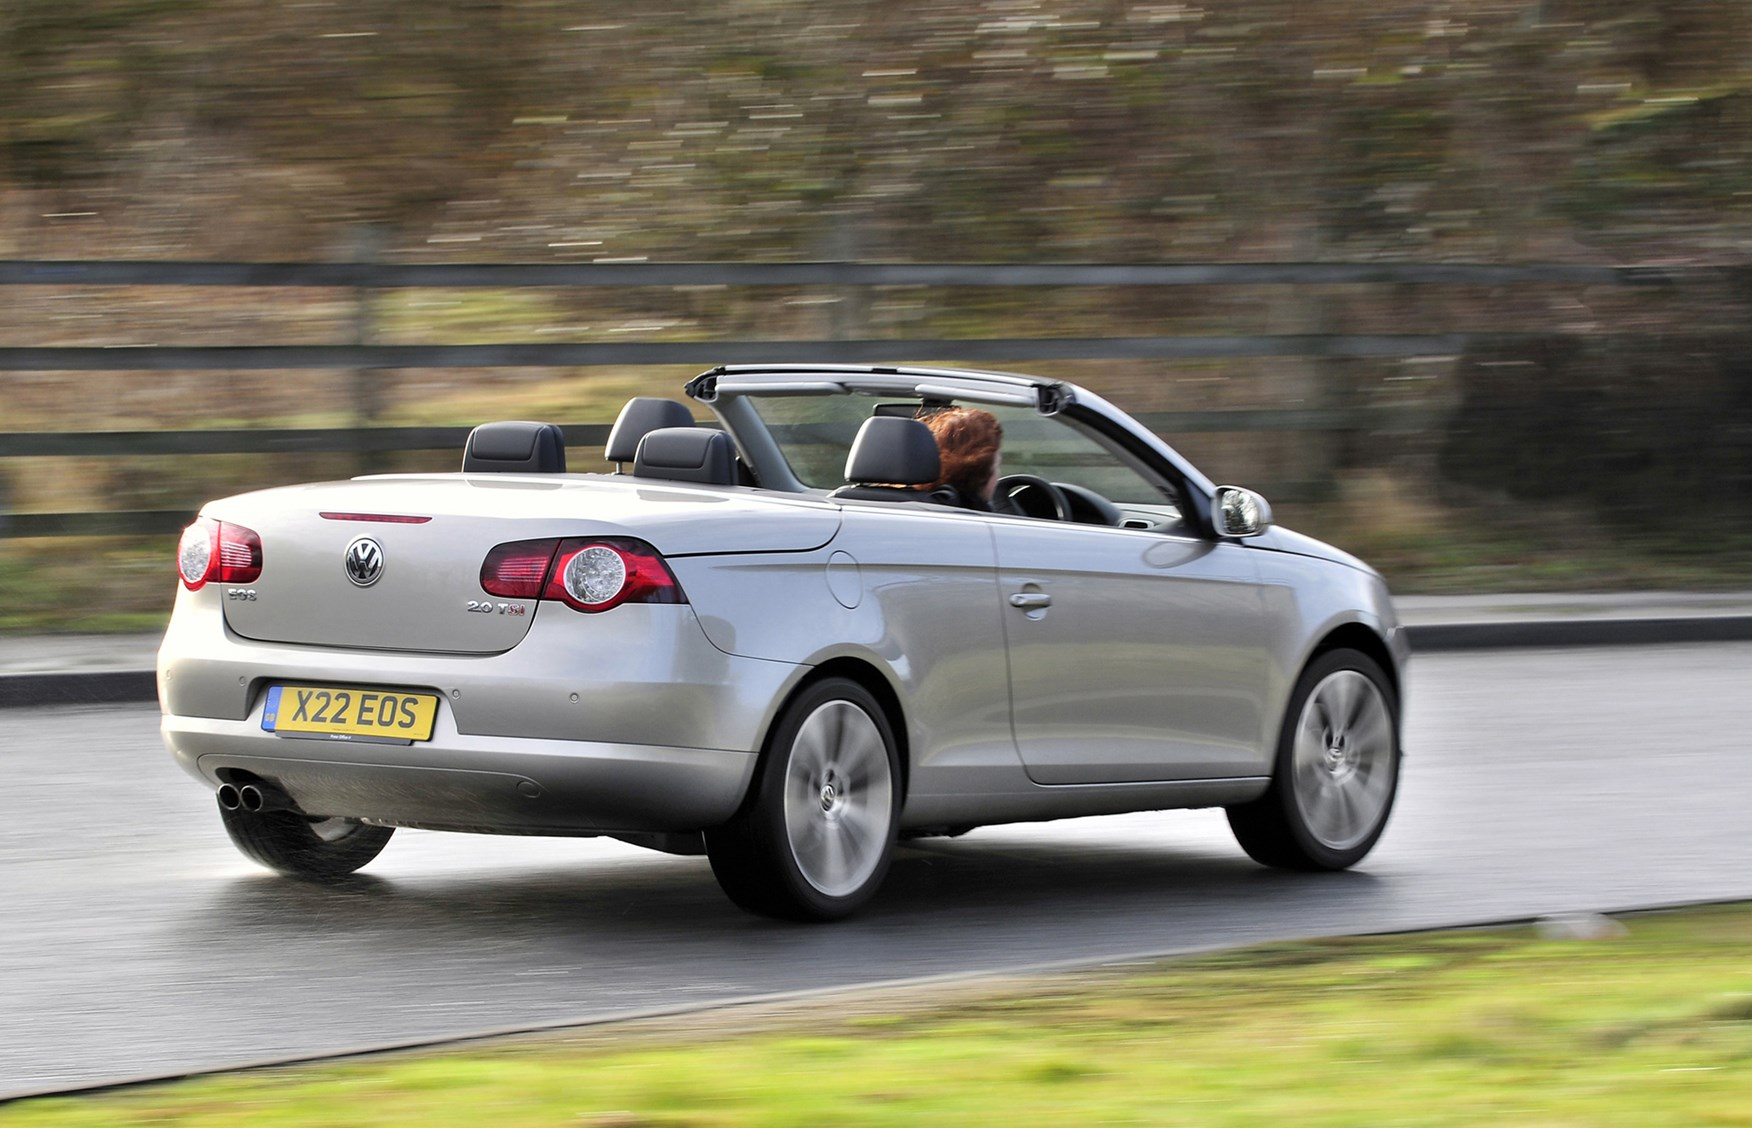 Volkswagen Eos Coupe Cabriolet Review (2006 - 2014) | Parkers